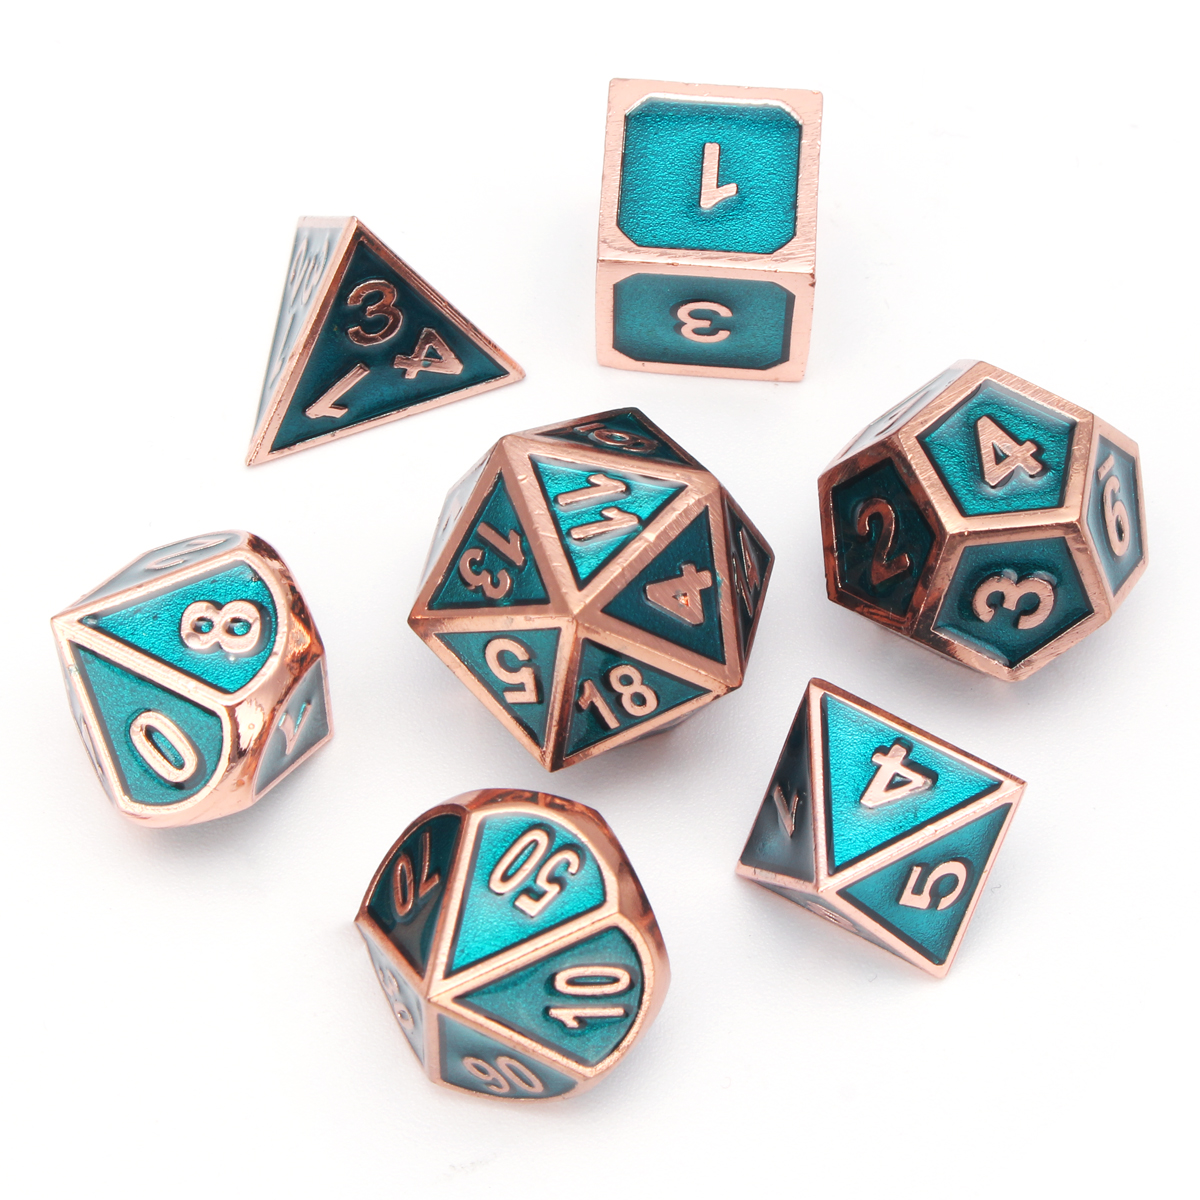 7Pcs Antique Alloy Metal Polyhedral Dice Set Role Playing Game Gadget Dices with Bag